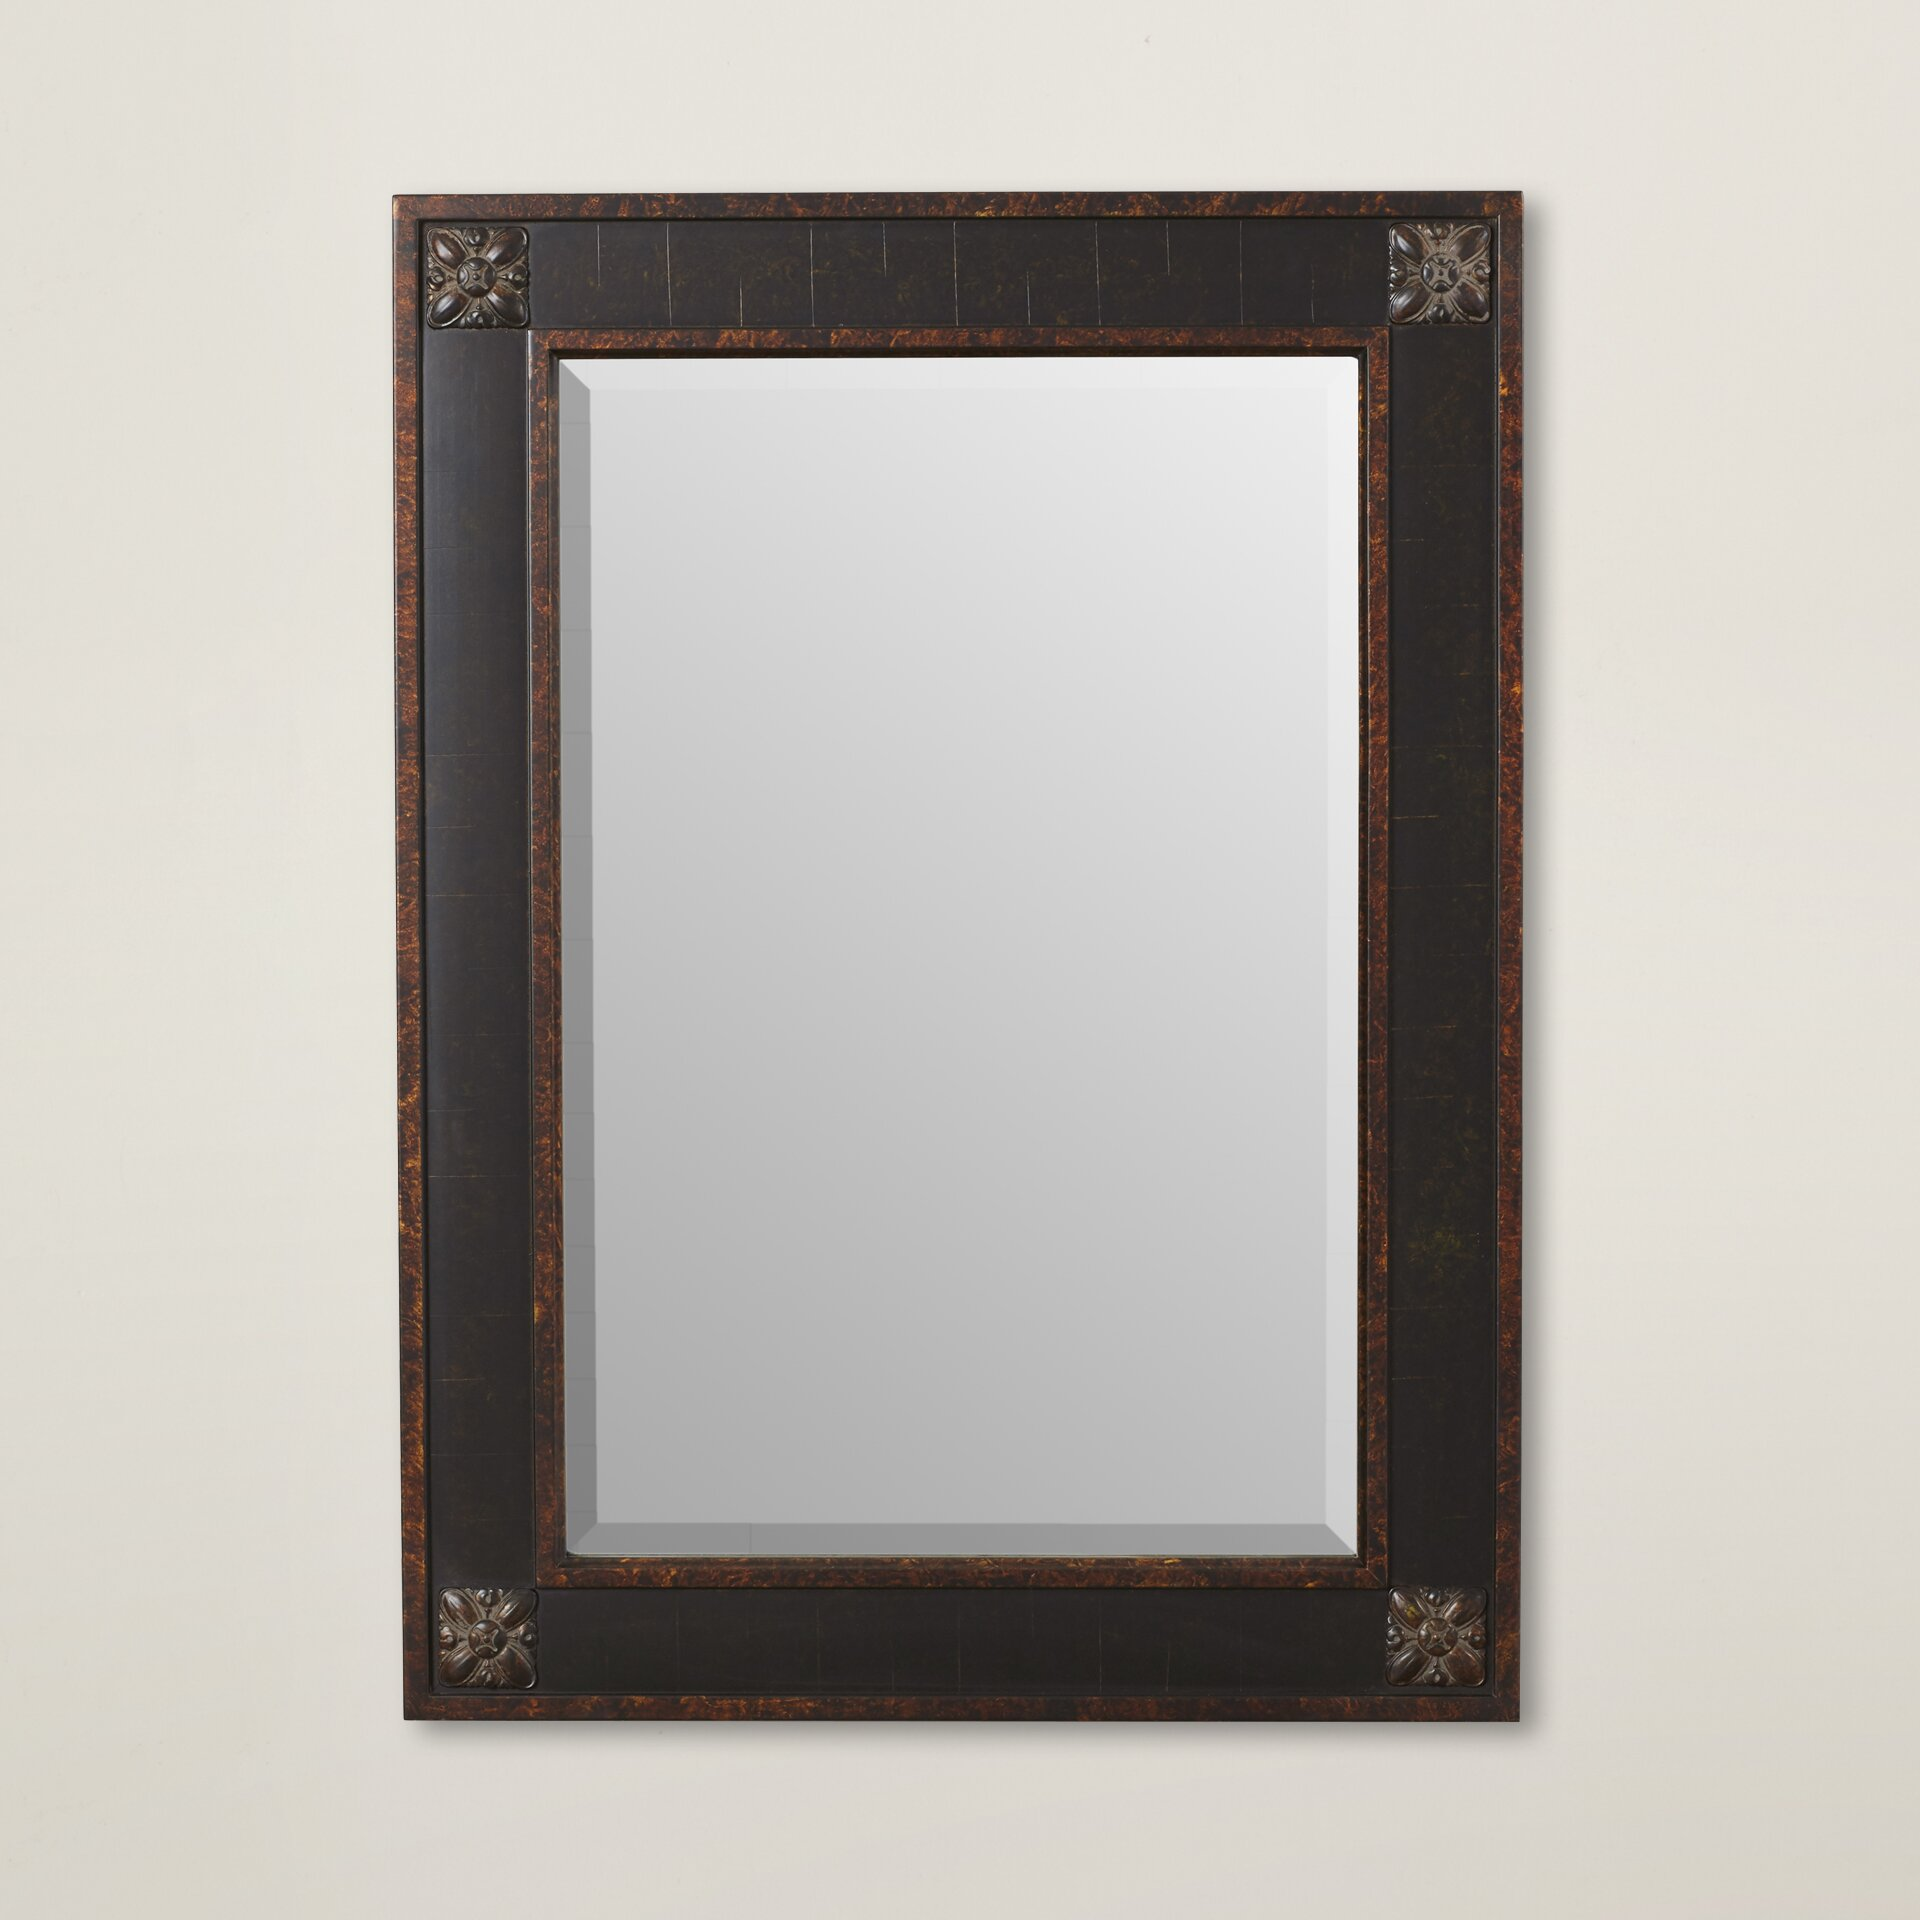 rosalind wheeler rectangular beveled vanity mirror in distressed walnut brown. Black Bedroom Furniture Sets. Home Design Ideas